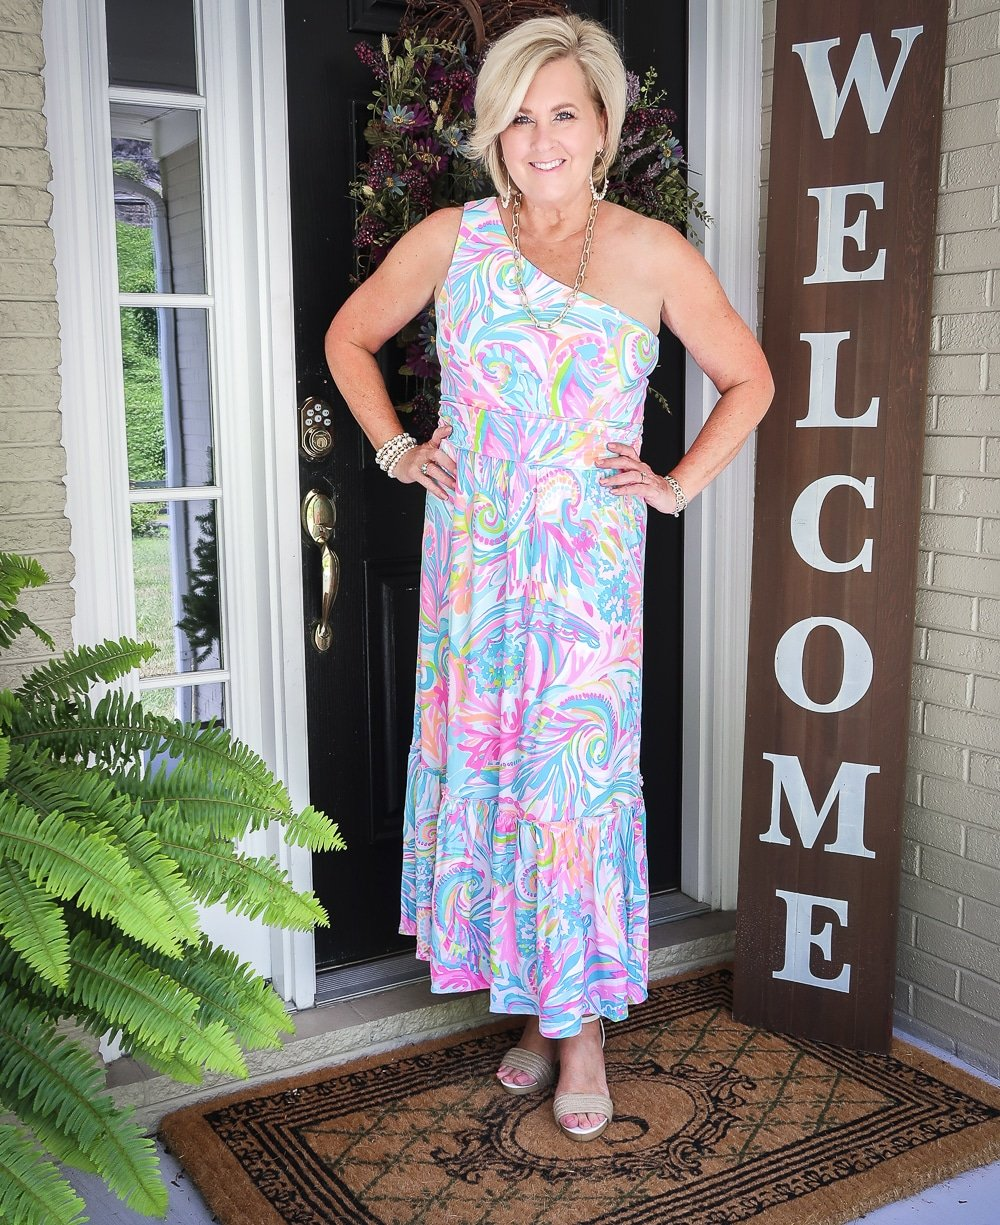 Fashion Blogger 50 Is Not Old is styling a one shoulder Lilly Pulitzer dress with gold jewelry from Kendra Scott